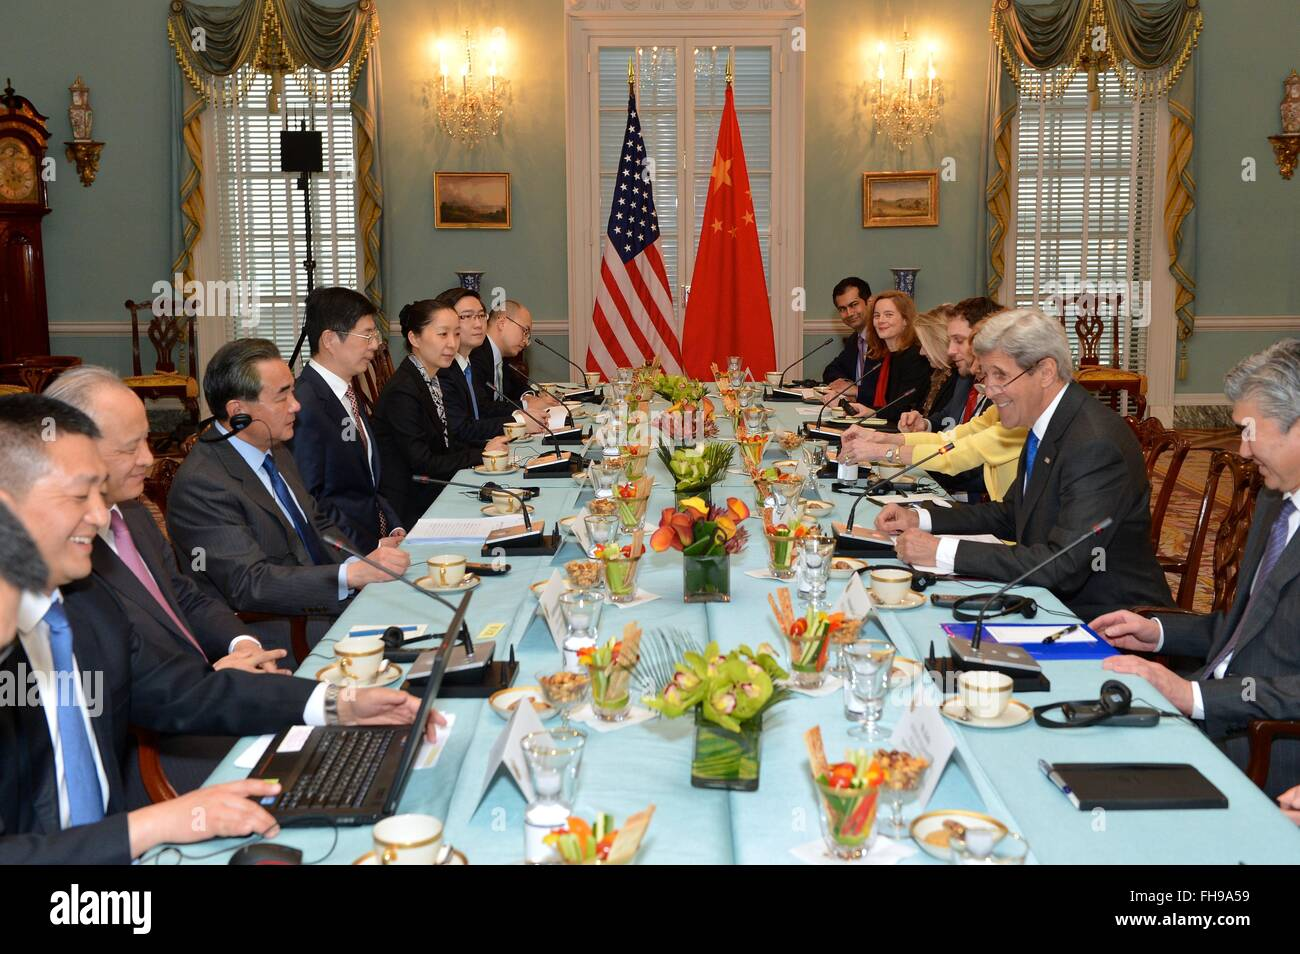 U.S. Secretary of State John Kerry and Chinese Foreign Minister Wang Yi along with their delegation during a bilateral - Stock Image